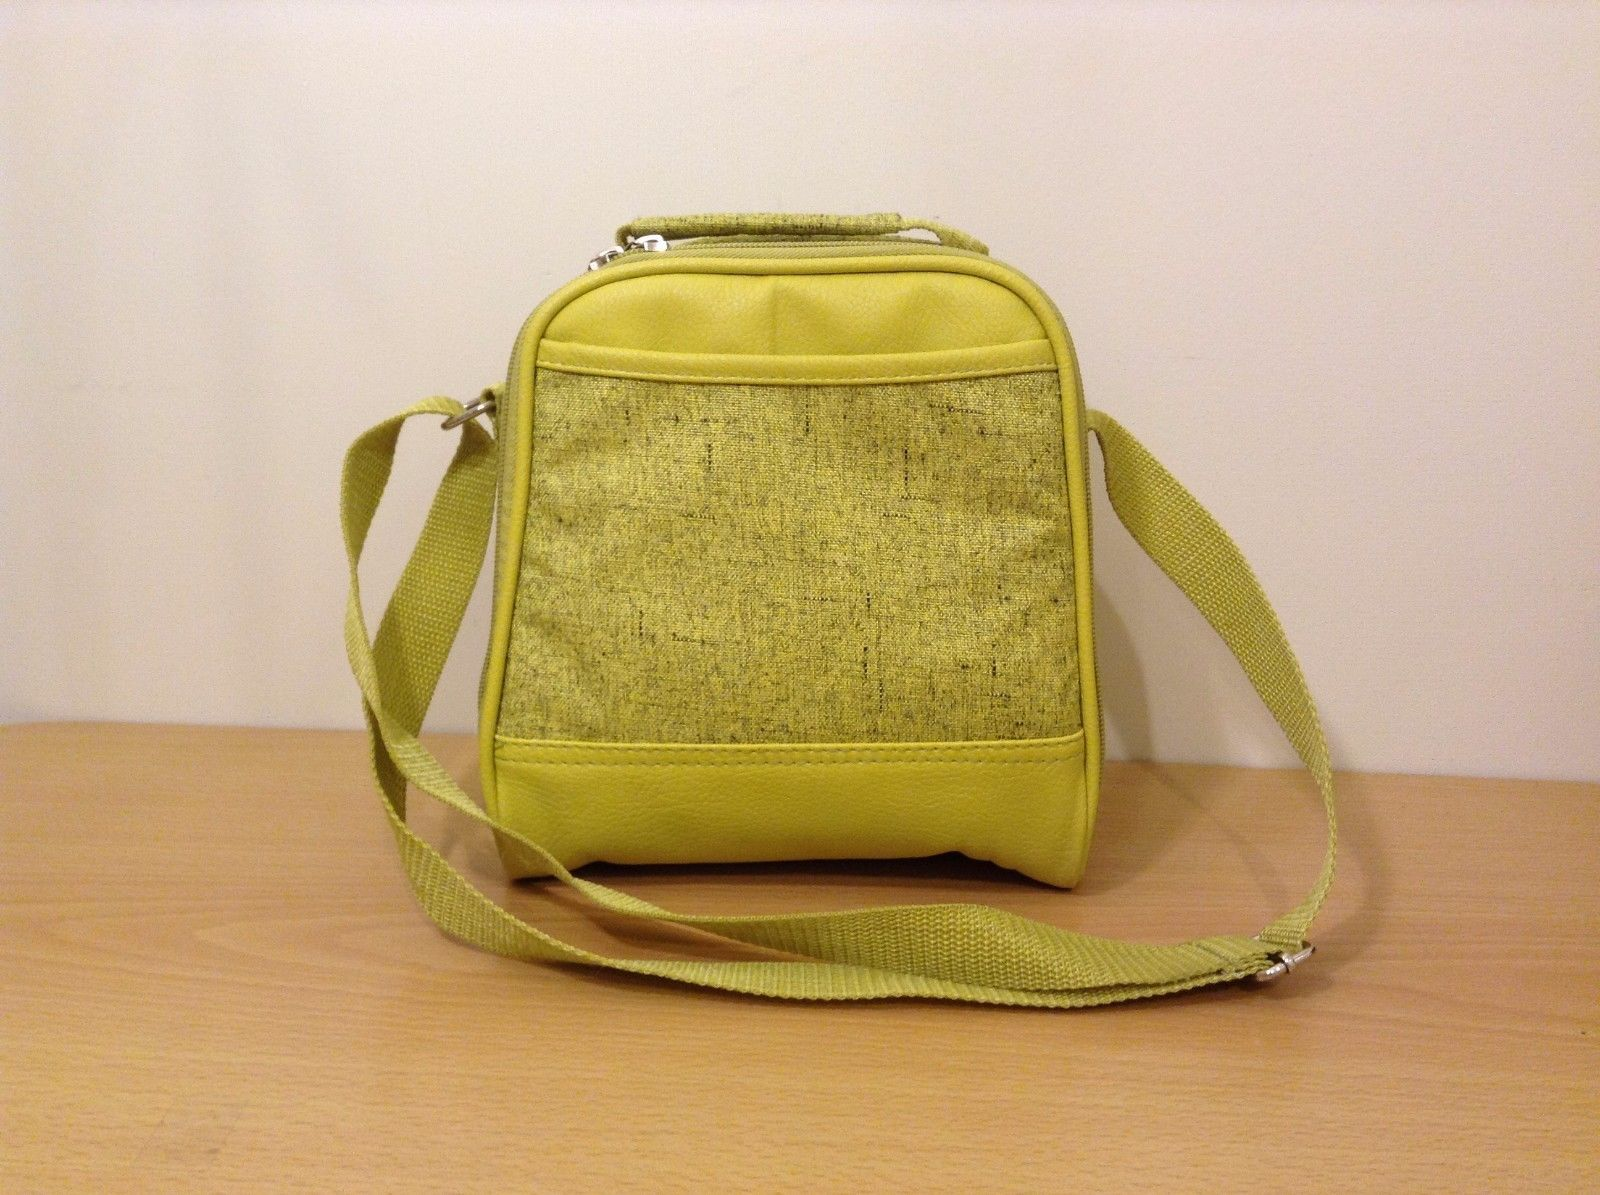 New Oak and Olive Lime Green Canvas Leather Insulated Lunch Box Picnic Shoulder